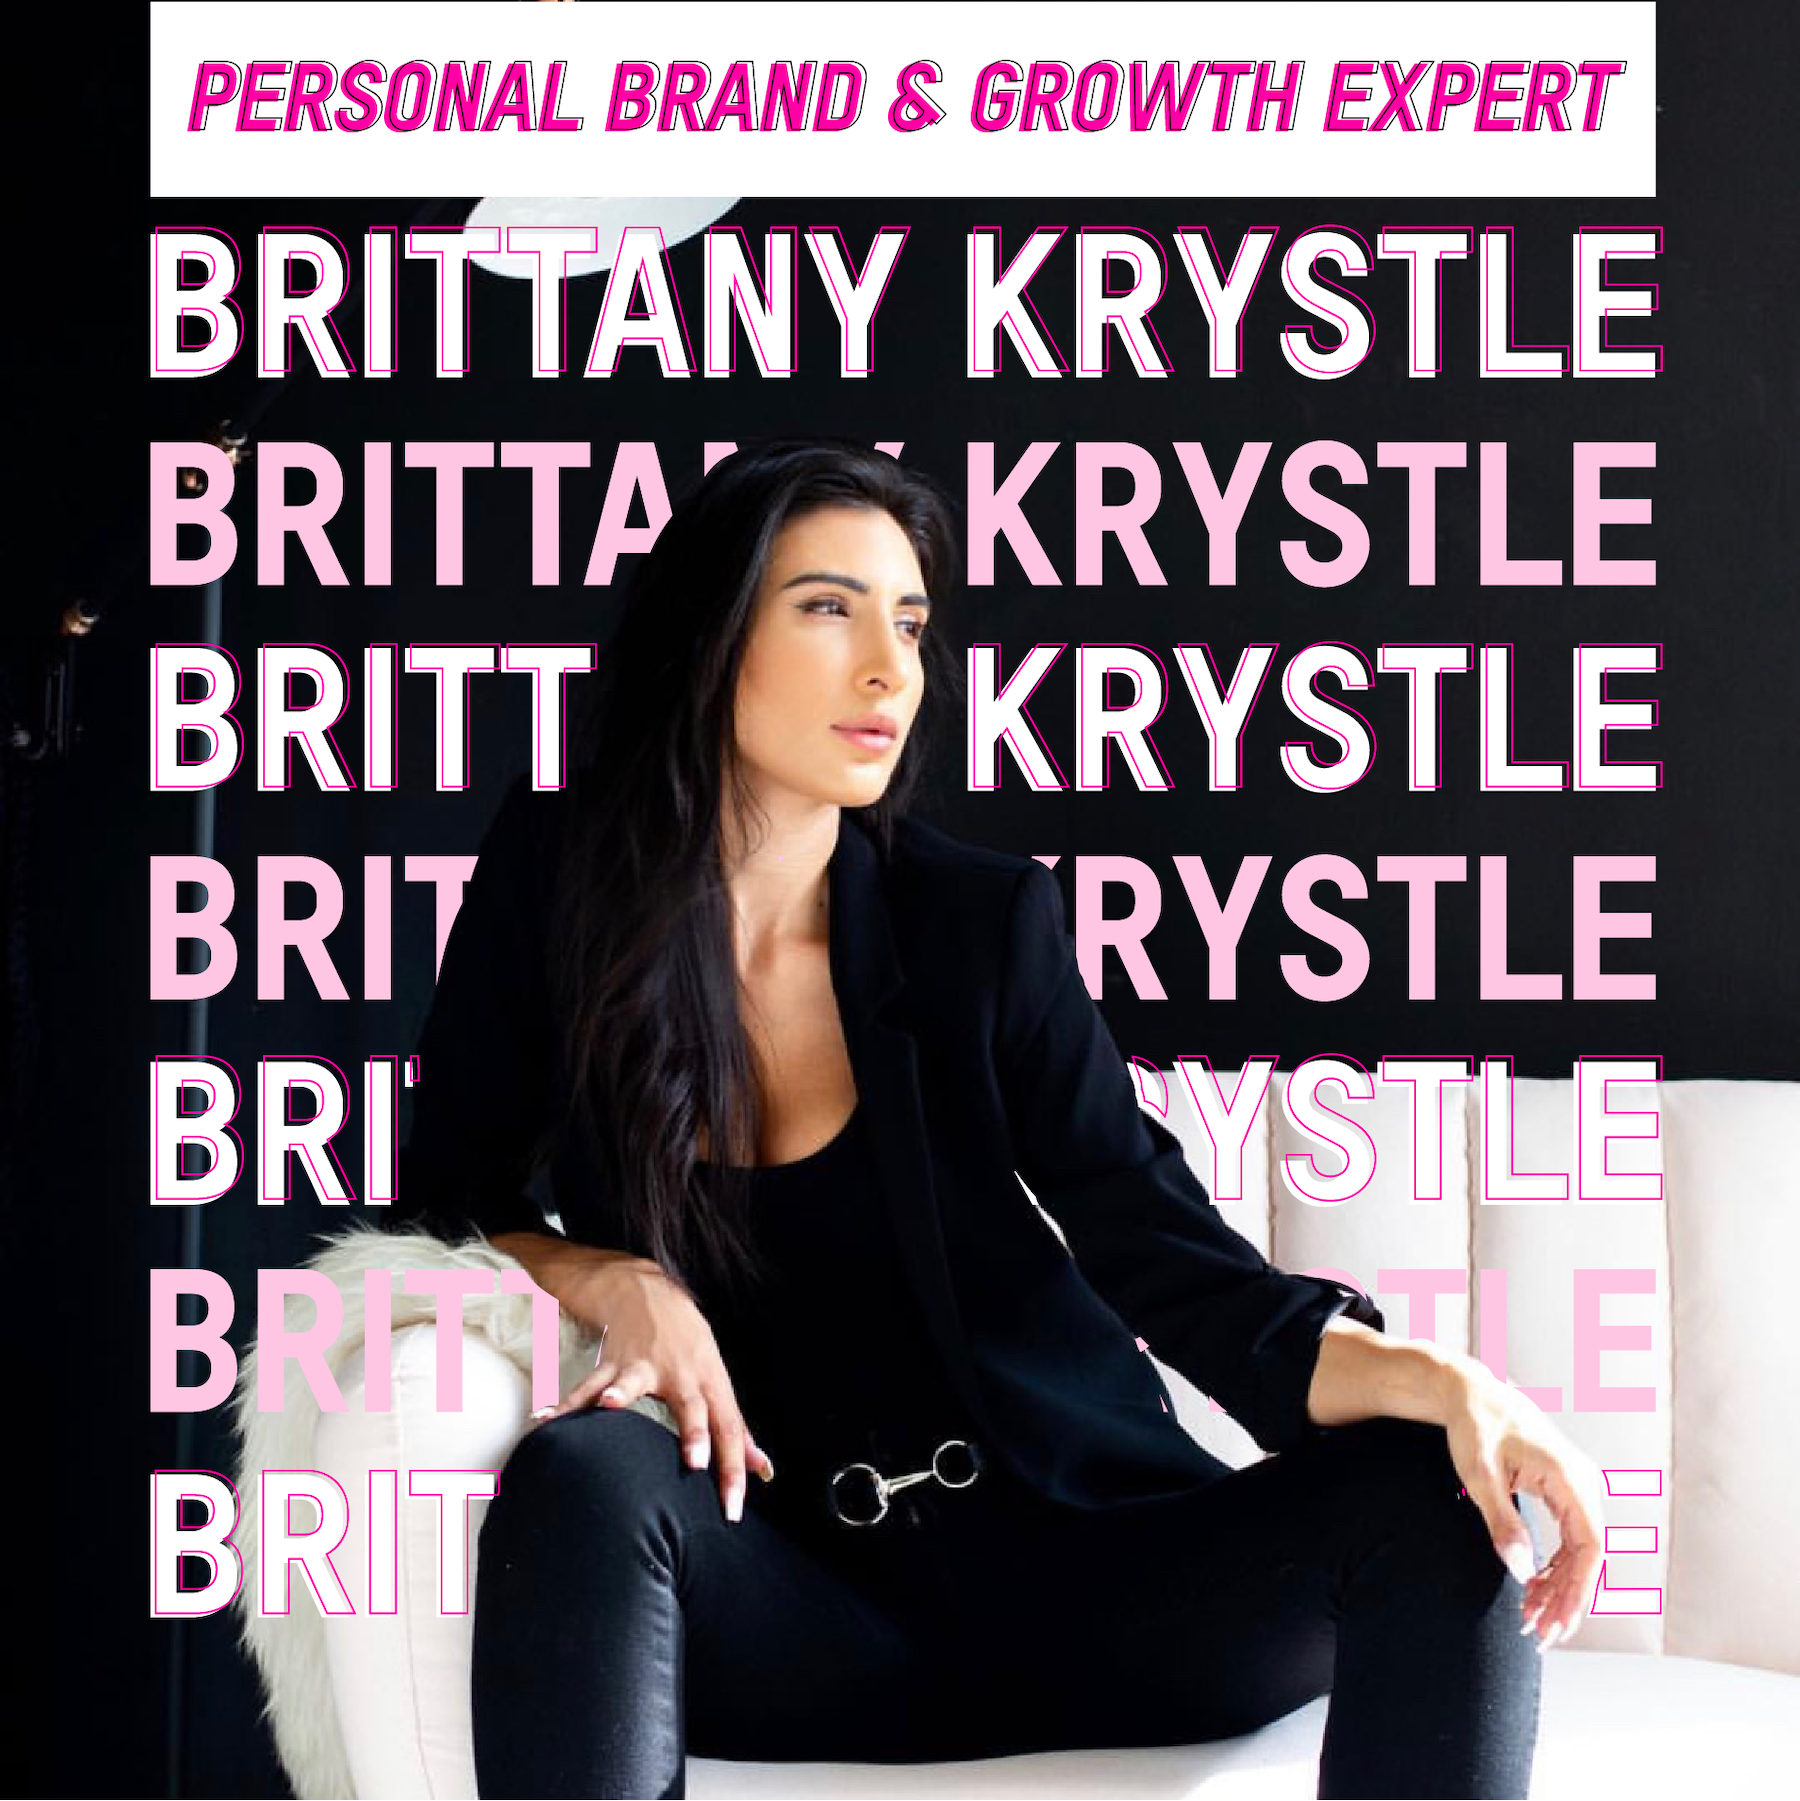 167: Brittany Krystle, growth expert - TSC HIM & HER SHOW